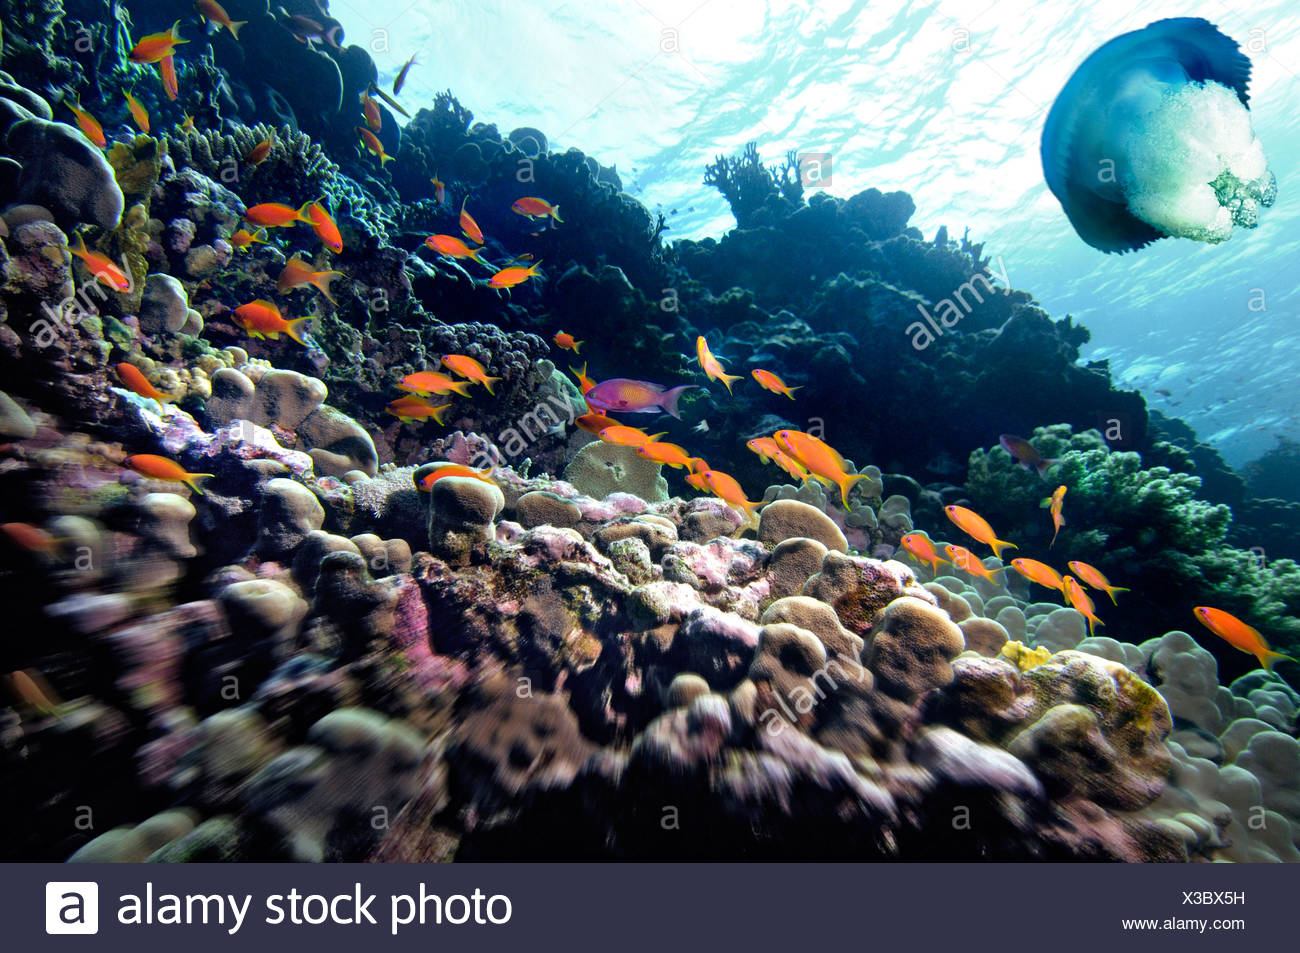 Middle East Egypt Red Sea, Basslets Anthiinae, Digital Composite> Jellyfish - Stock Image